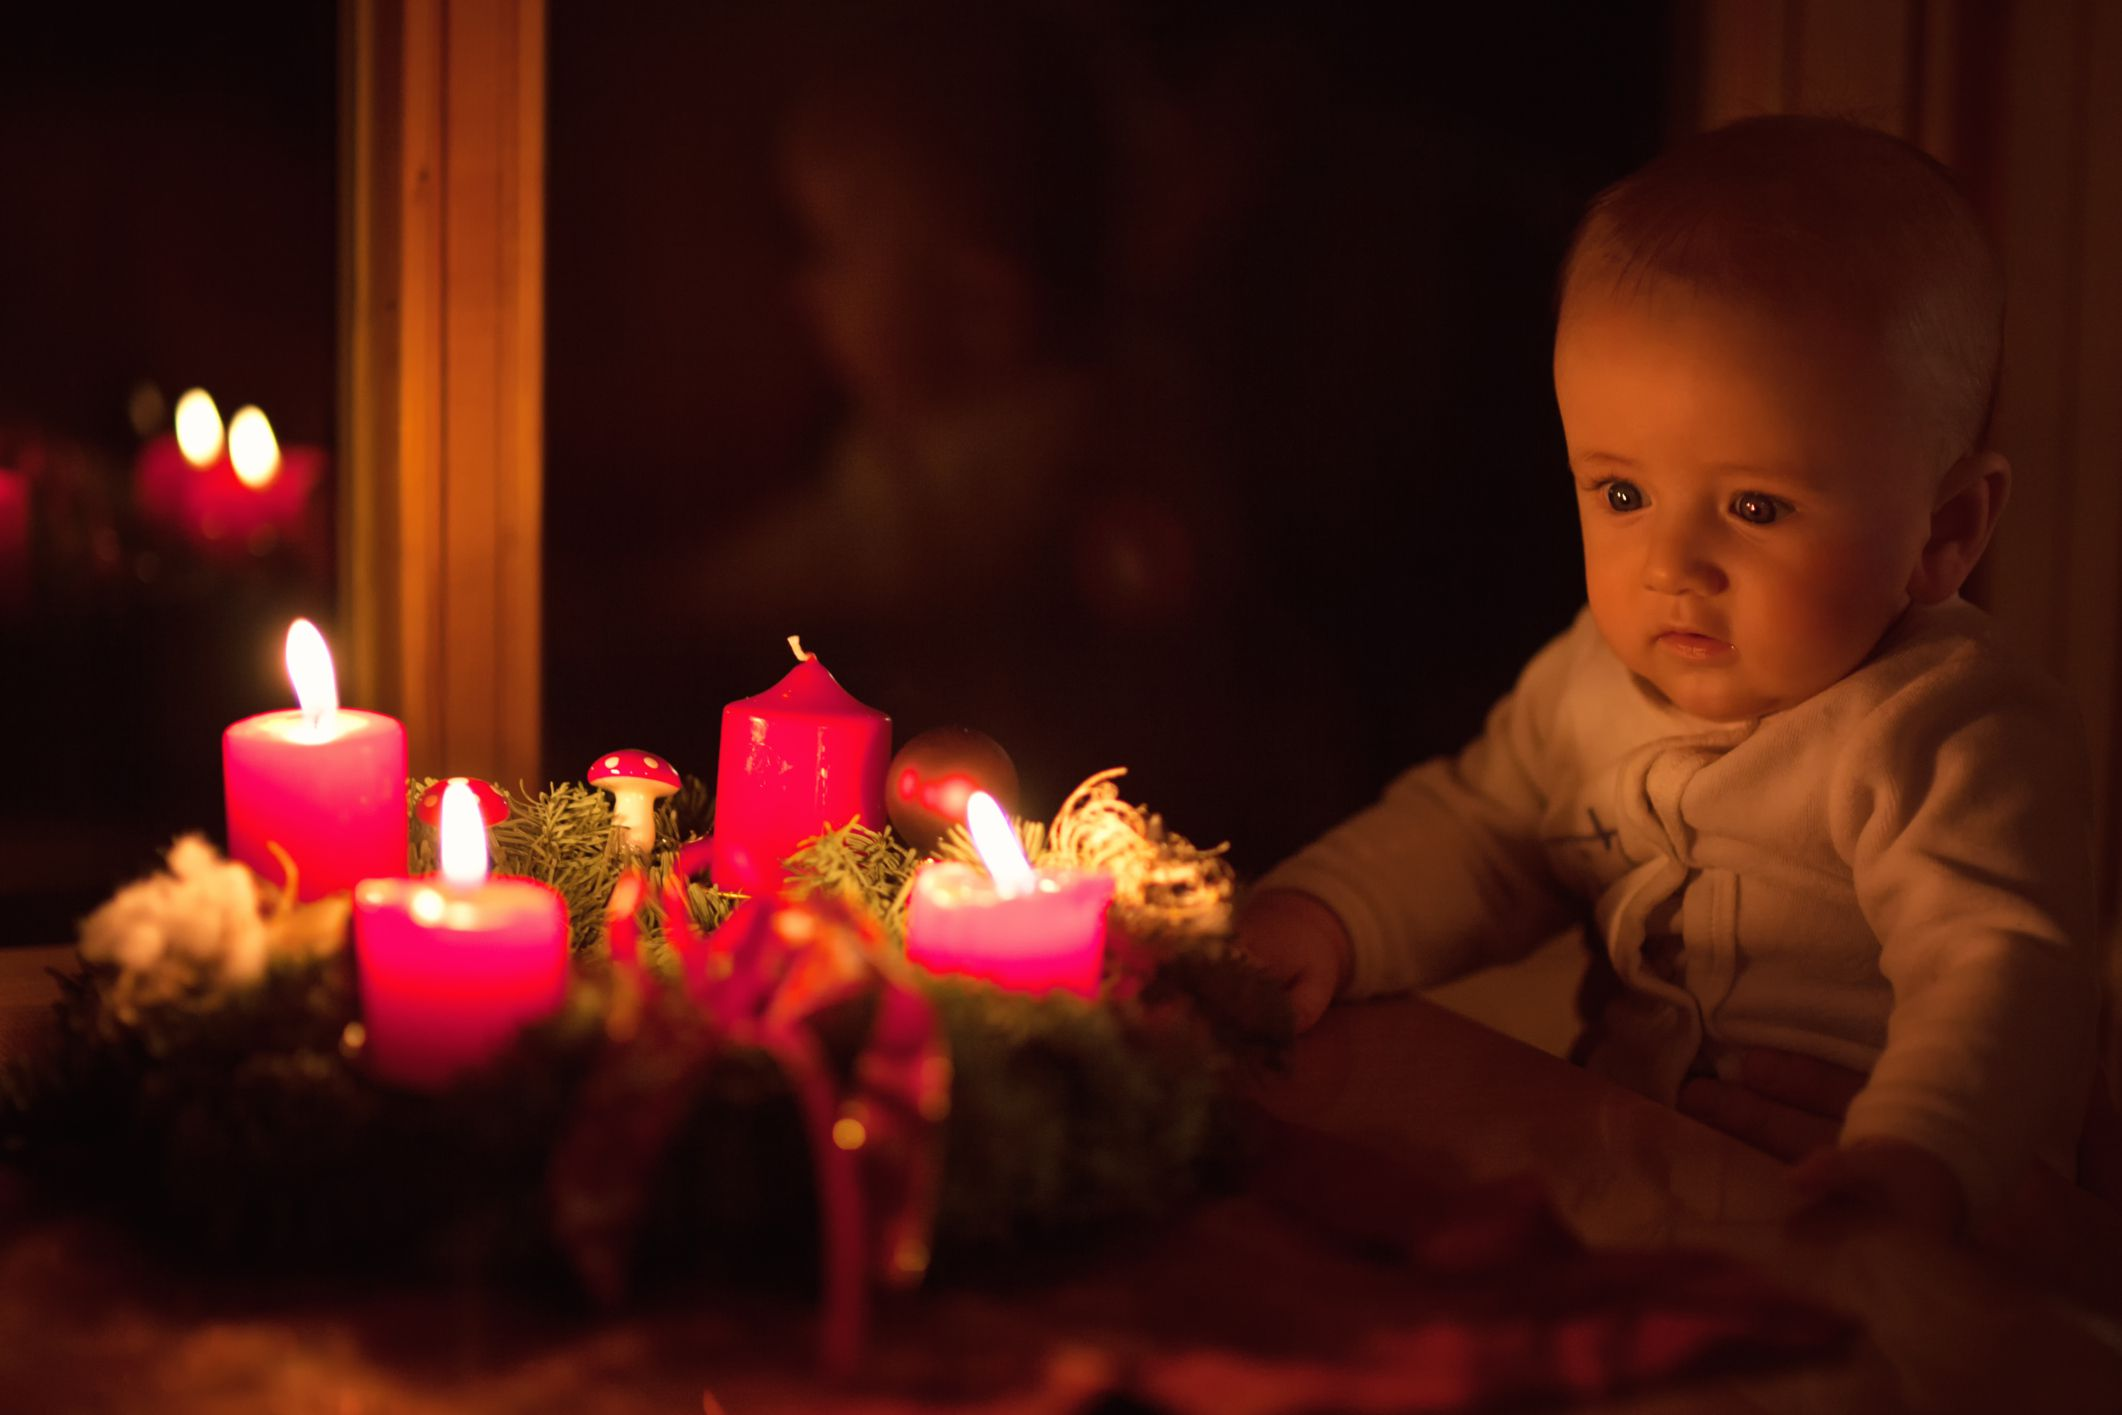 Why Do Christians Celebrate Christmas For Kids